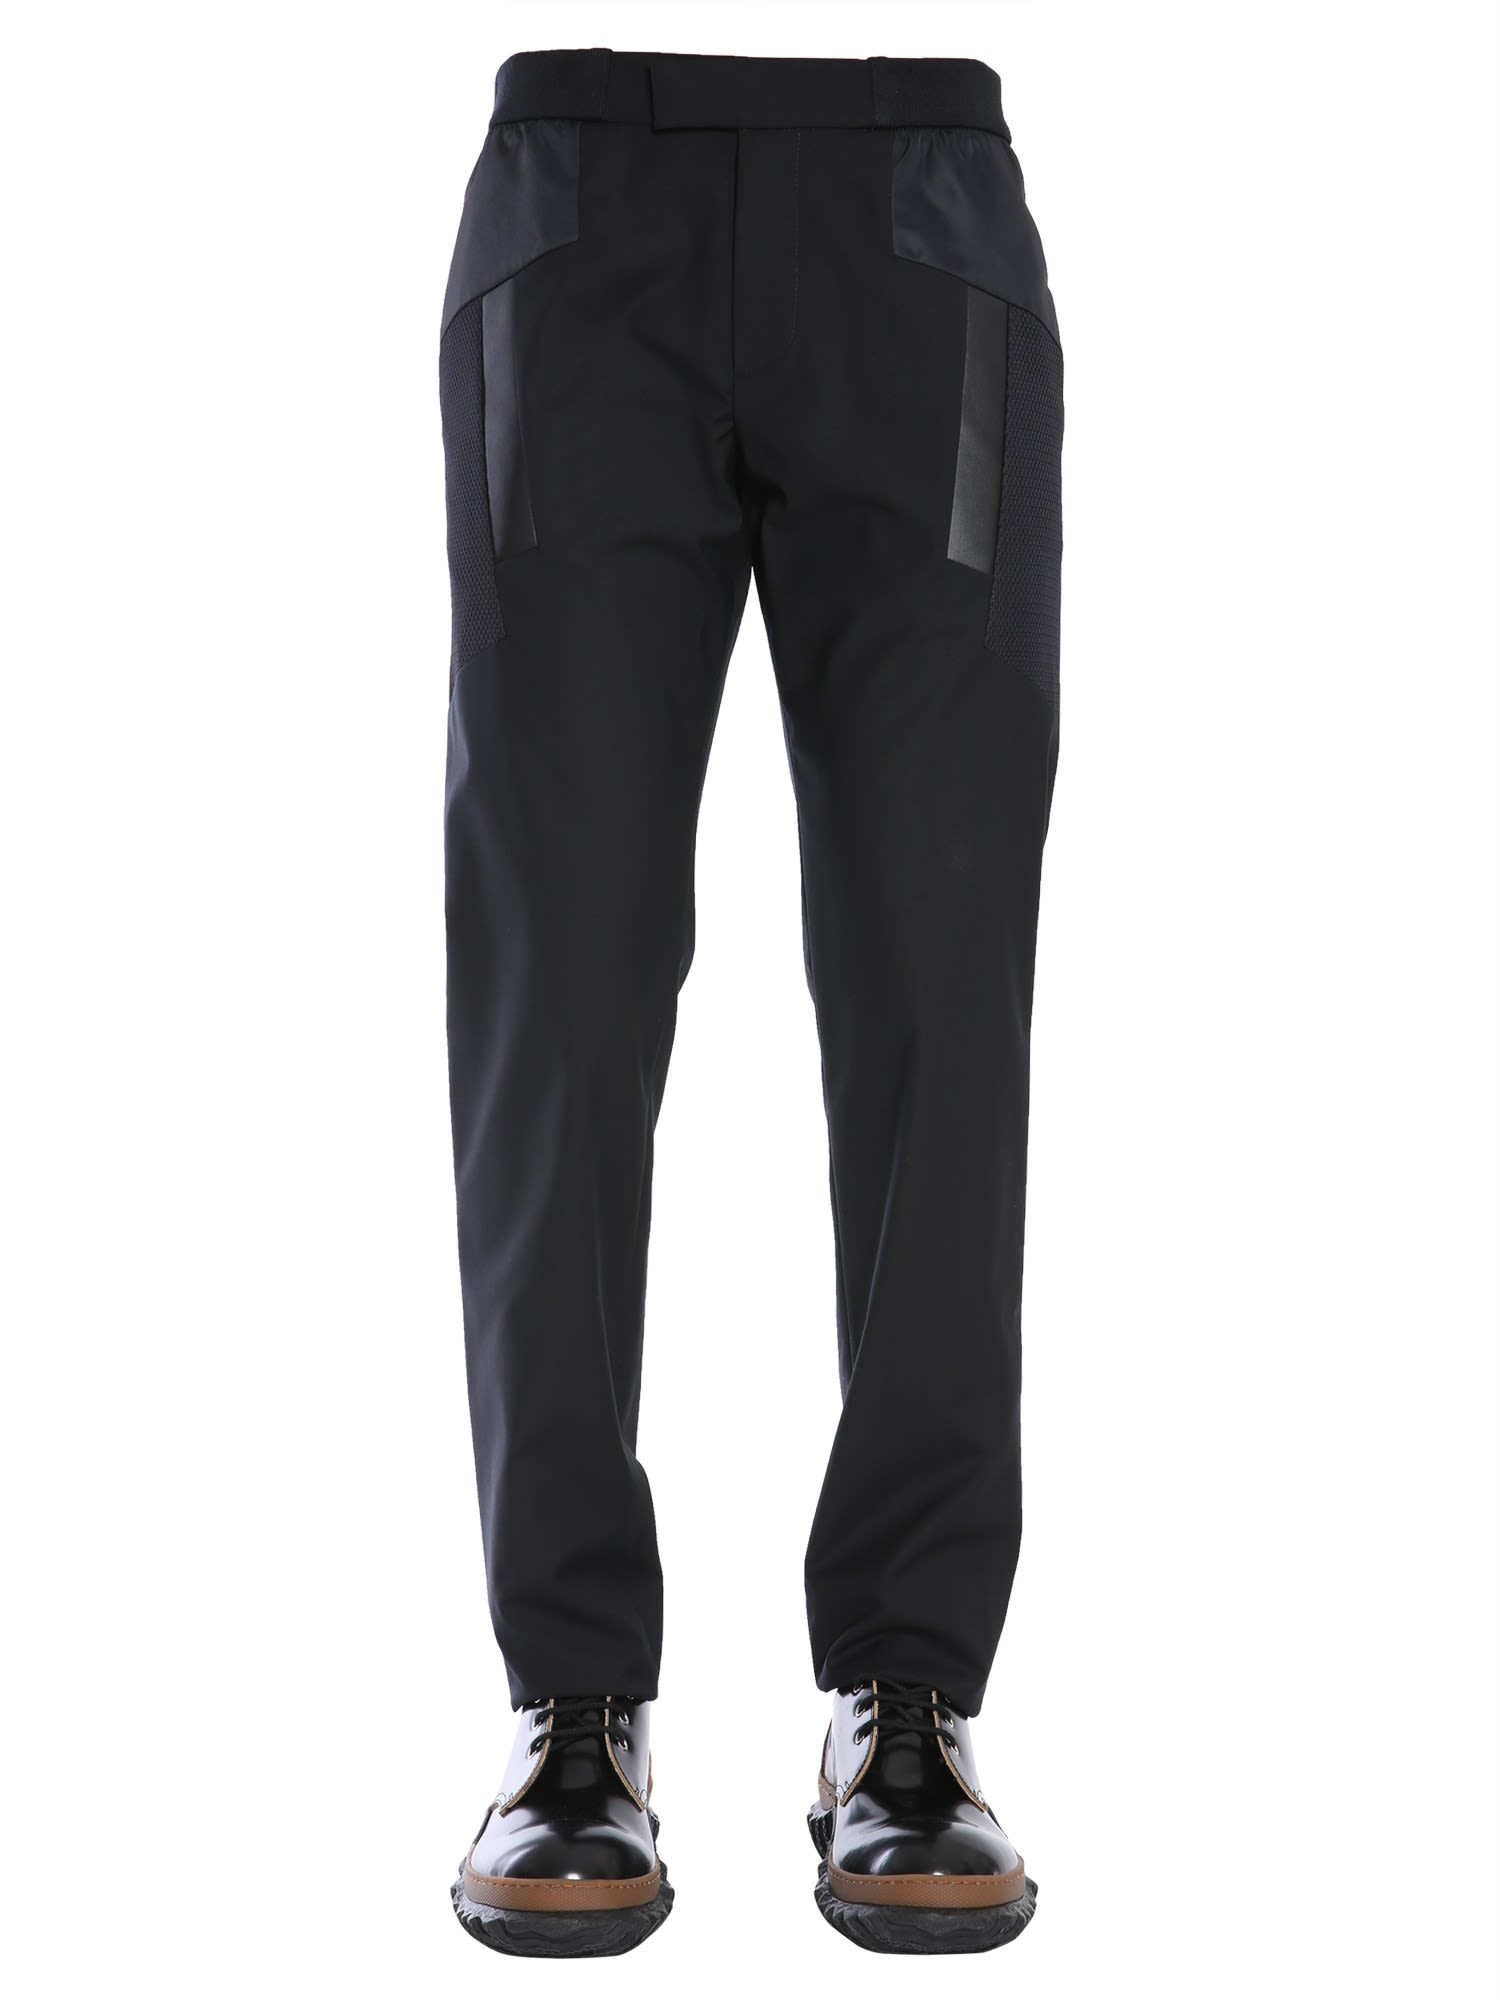 LES HOMMES TROUSERS WITH ELASTIC WAISTBAND